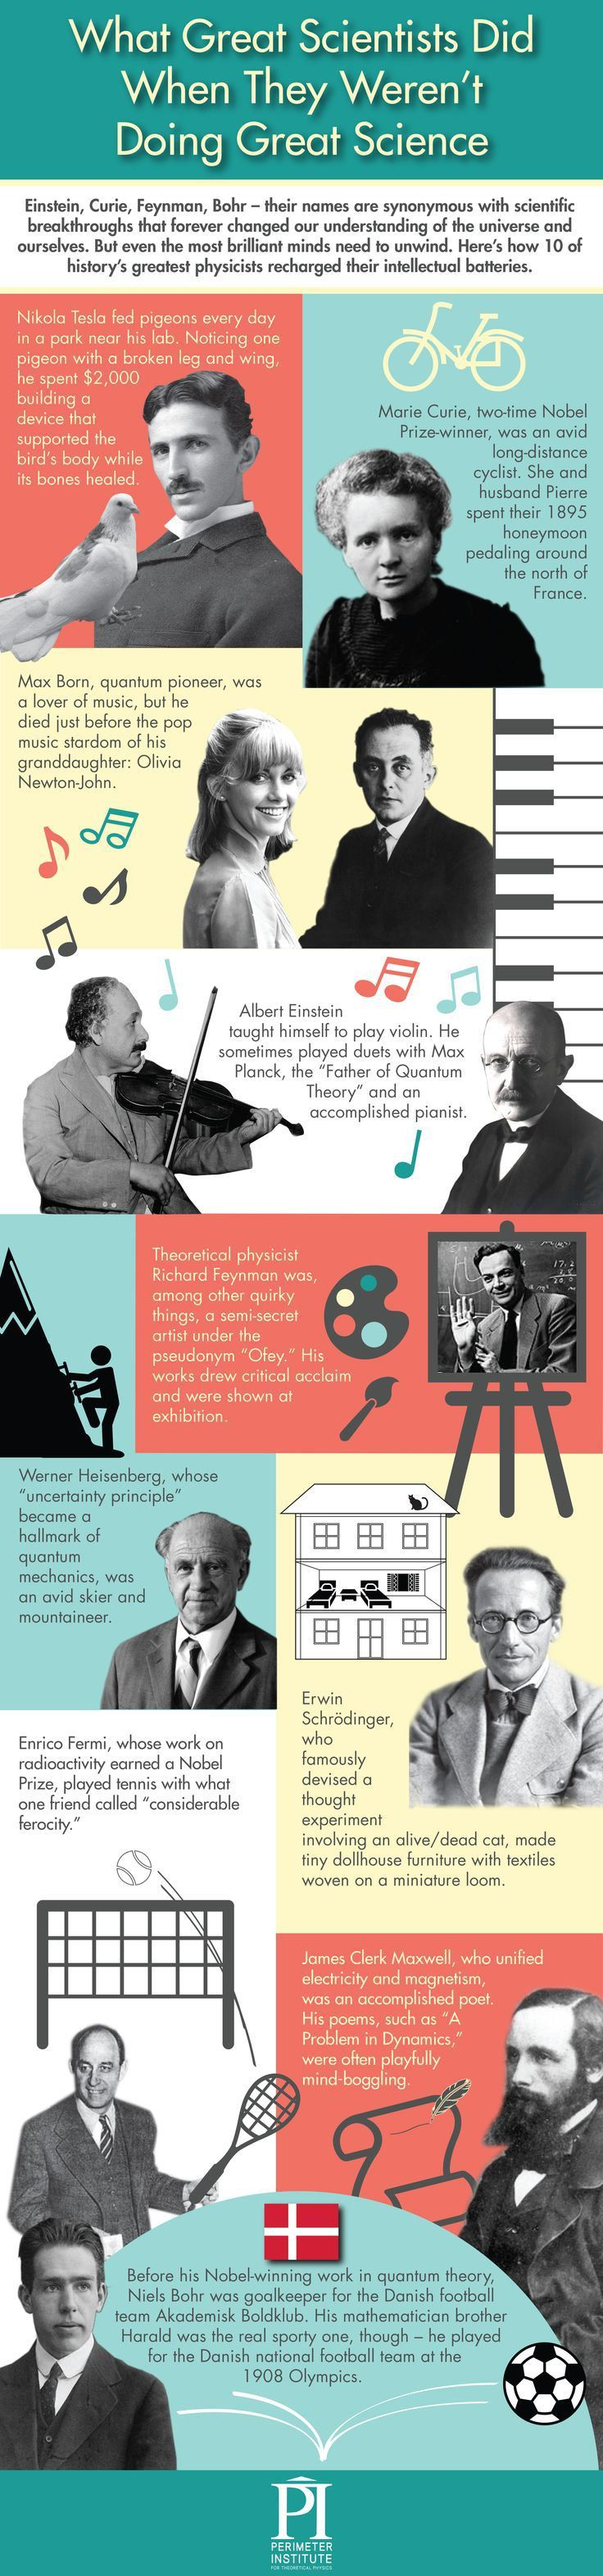 What Great Scientists Did When They Weren't Doing Science (infograph). Marie Curie was a simply astounding woman. She won the Nobel prize two times. The first time she won it in physics, in 1903, and the second time in chemistry, in 1911. But of course, there was much more to her life than just work. She had a husband and children….& she was also an avid long-distance cyclist. Get to know some of the interesting quirks behind the famous faces in science. Image via Premier Institute